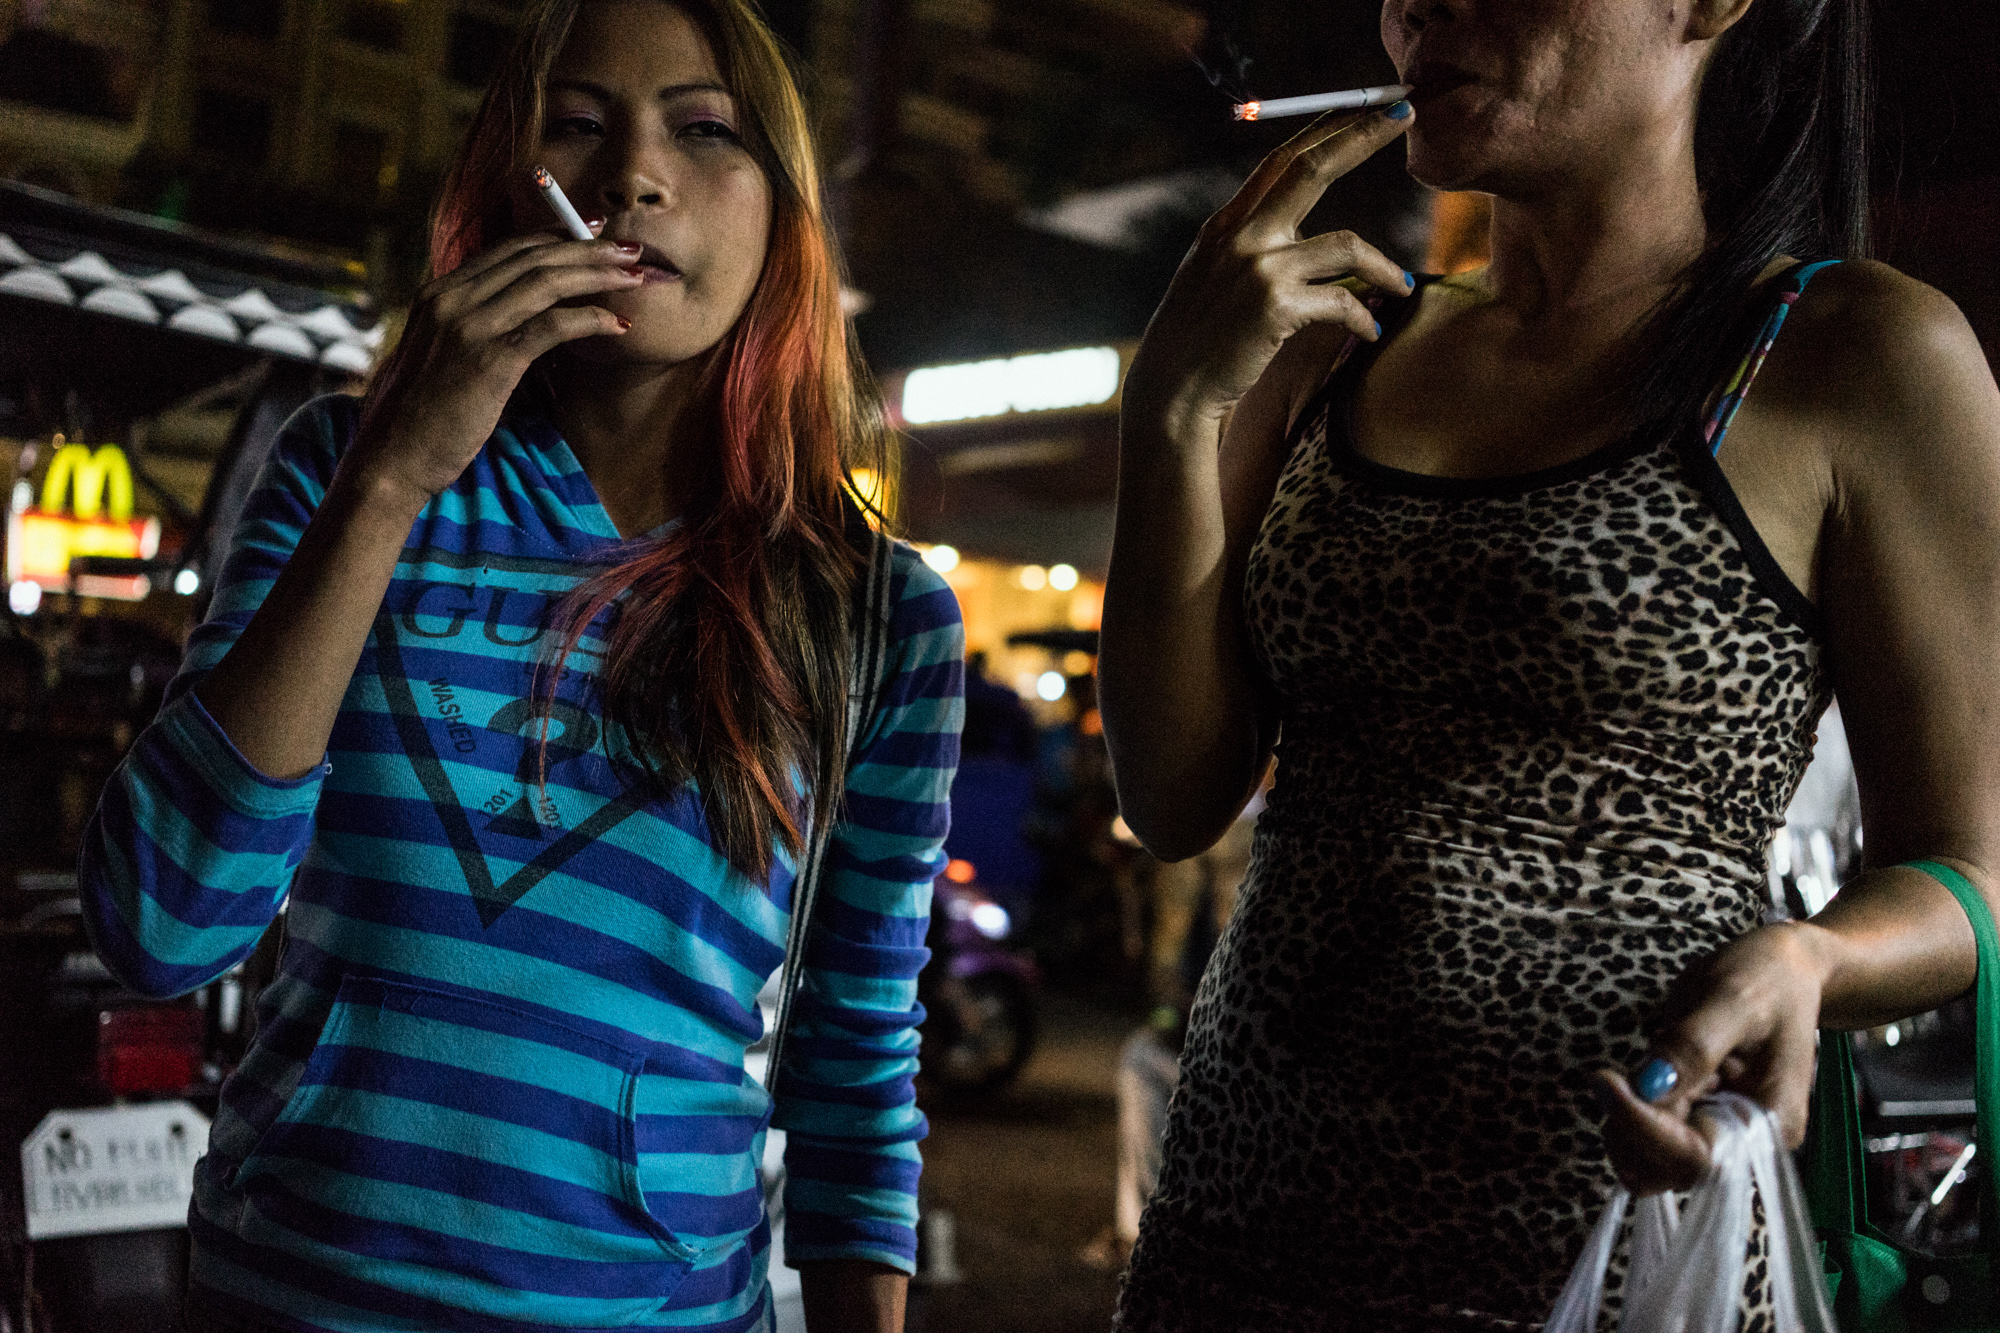 Jojo and Rose smoke cigarettes after a night at work in one of the bars in Angeles City. (Photo by Hannah Reyes Morales/GroundTruth)